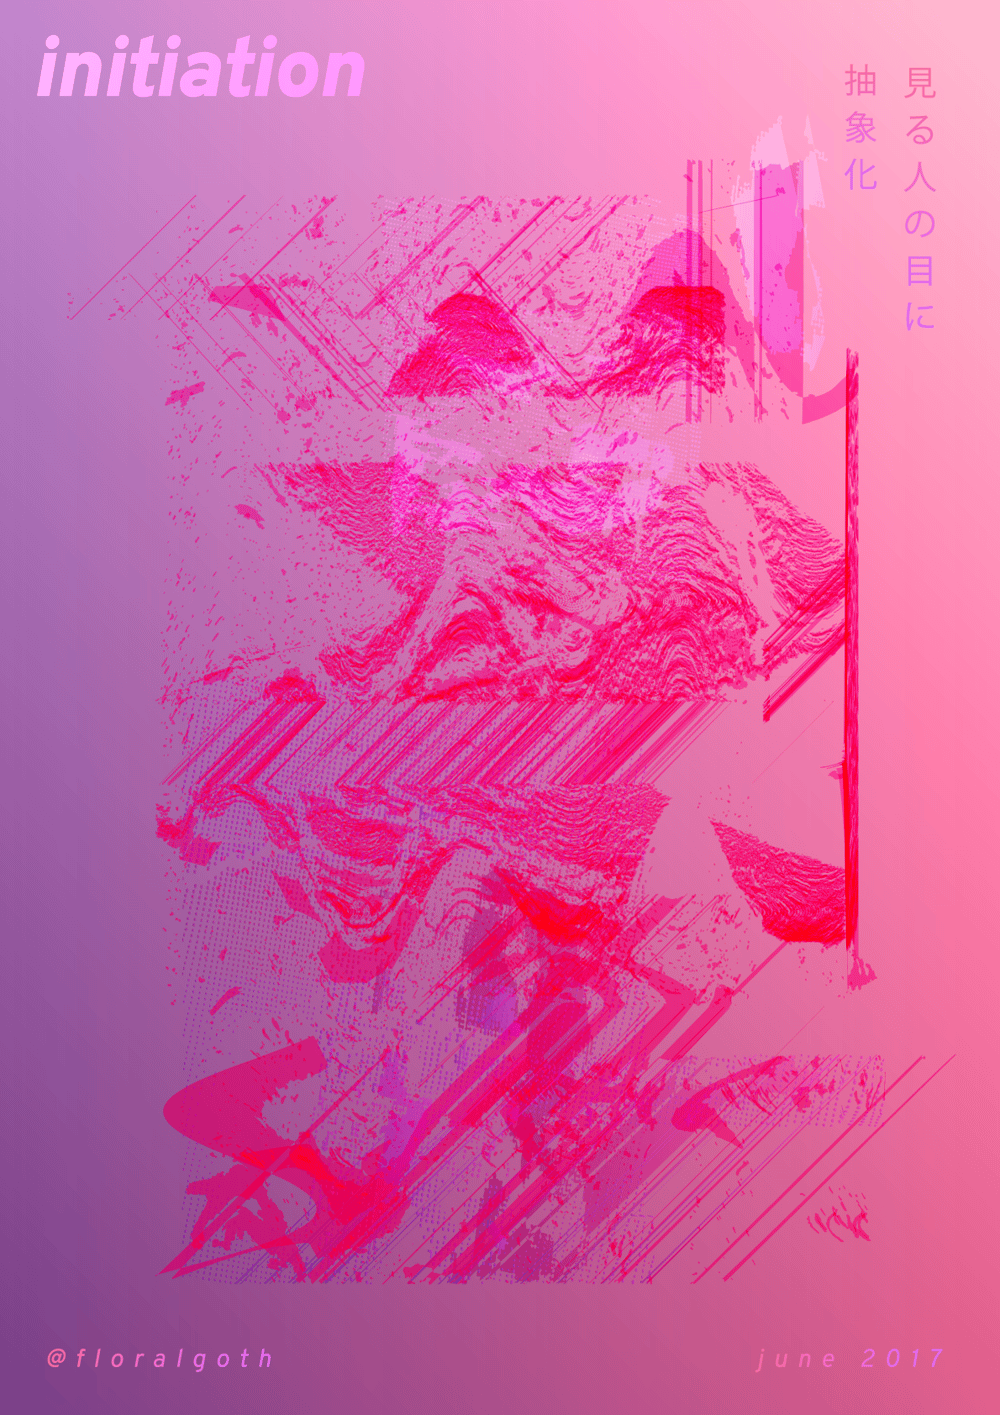 Abstraction is in the Eye of the Beholder - image 1 - student project